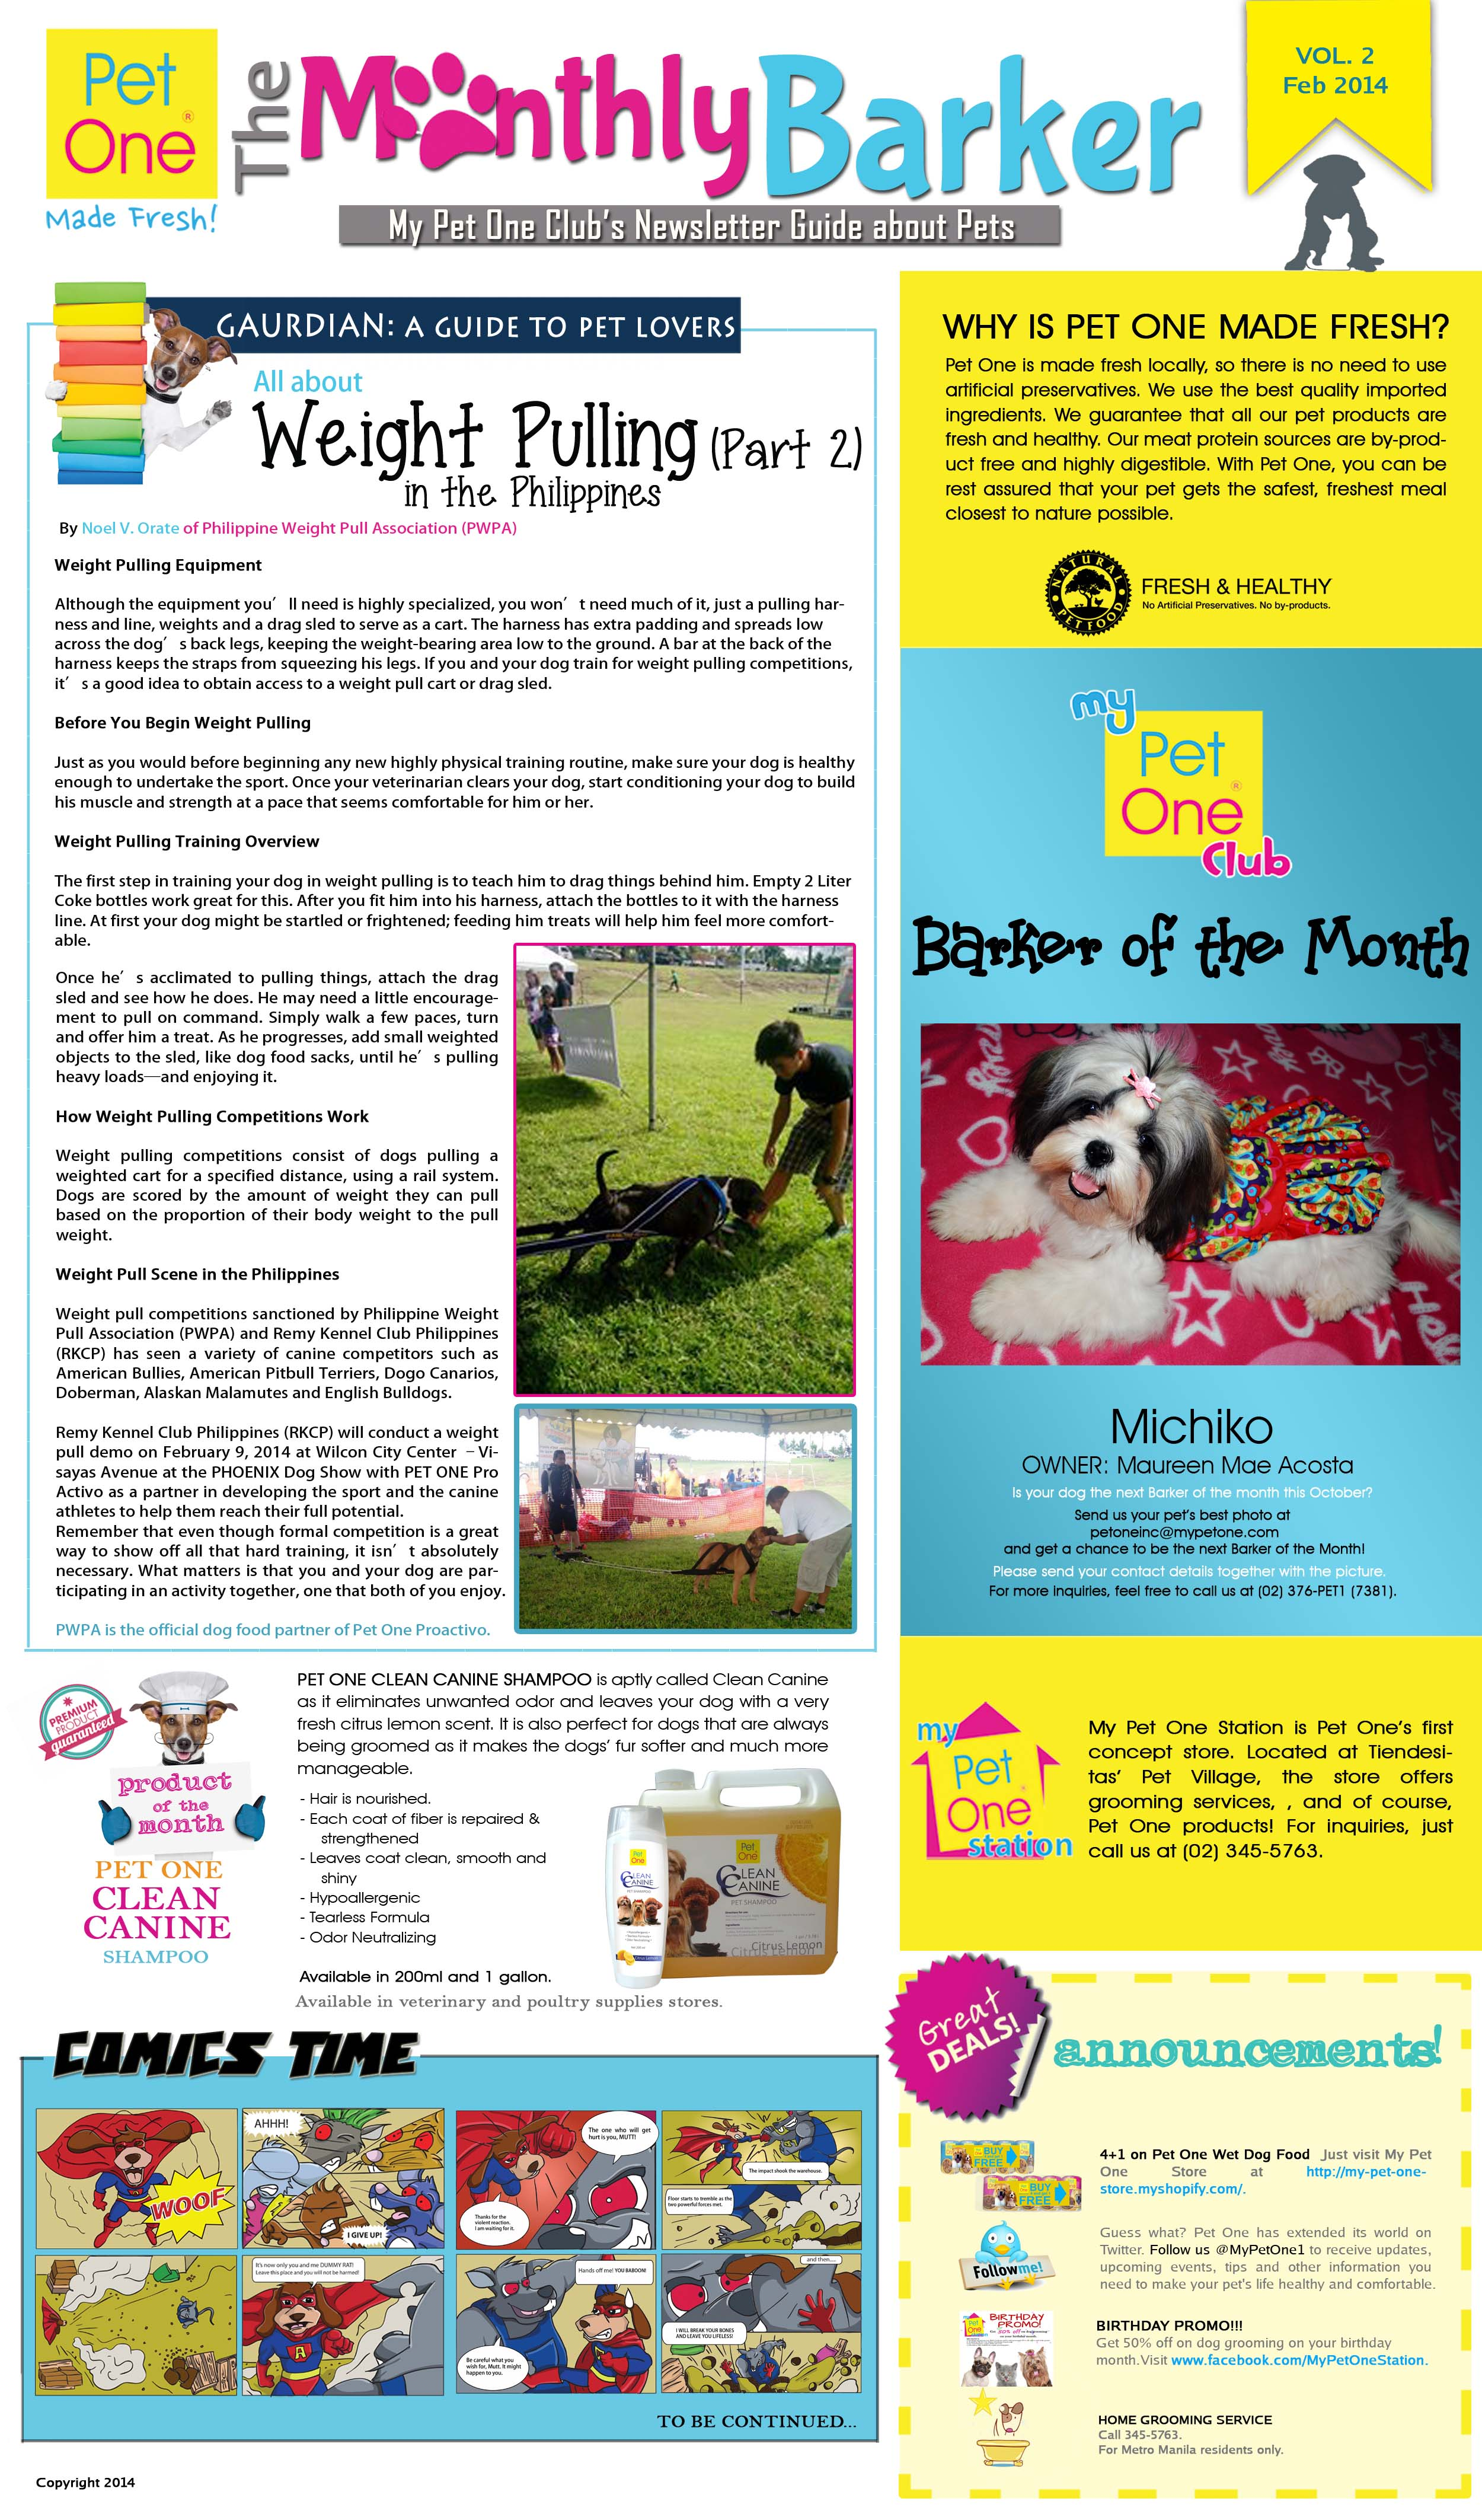 PET ONE Monthly Barker Newsletter February Volume 2